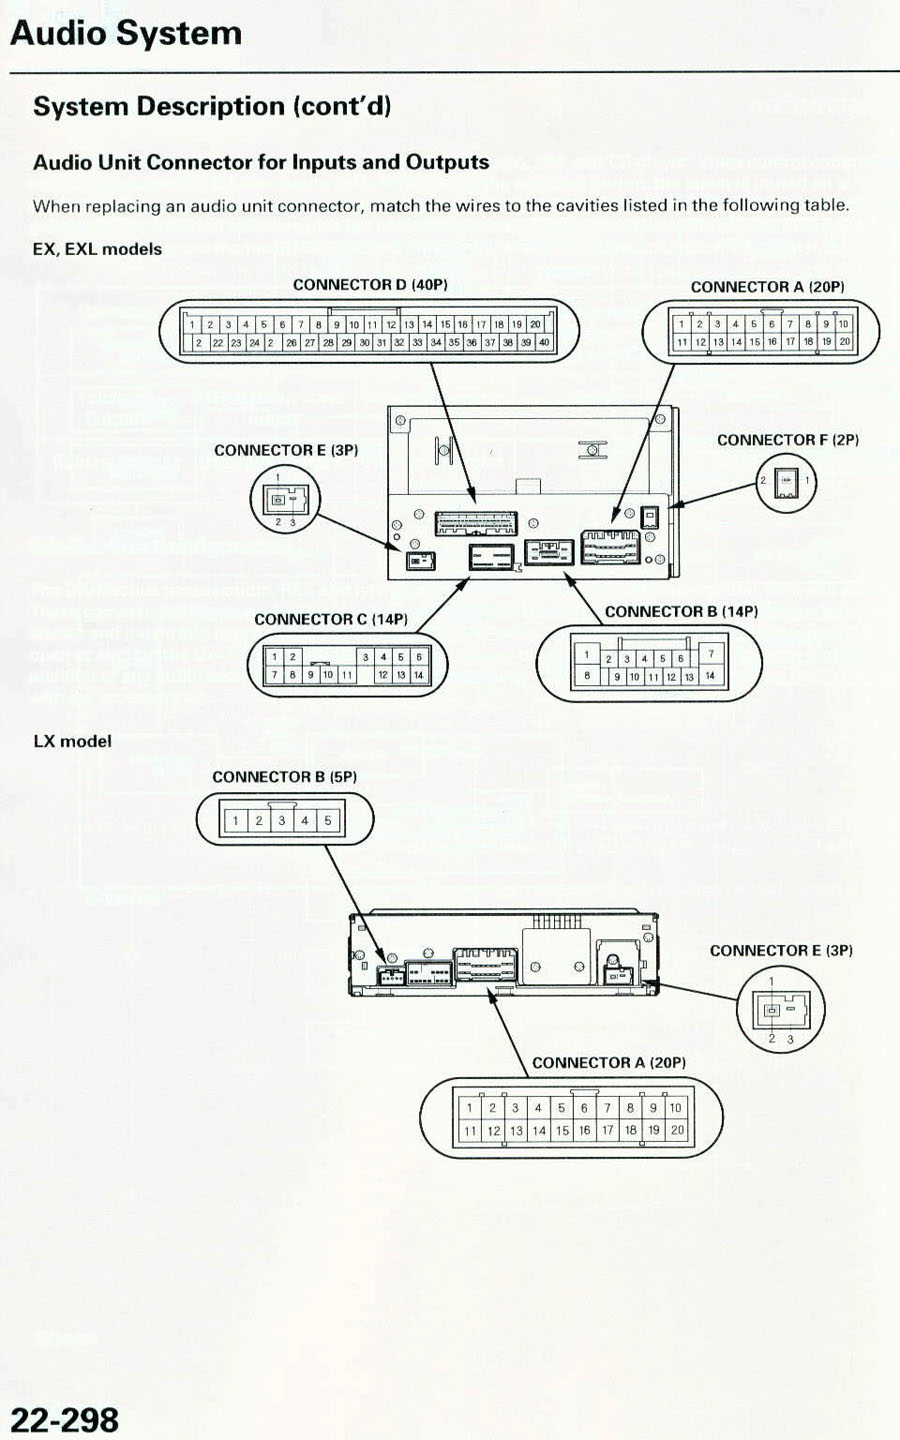 2003 Honda Civic Radio Wiring Diagram from www.piloteers.org